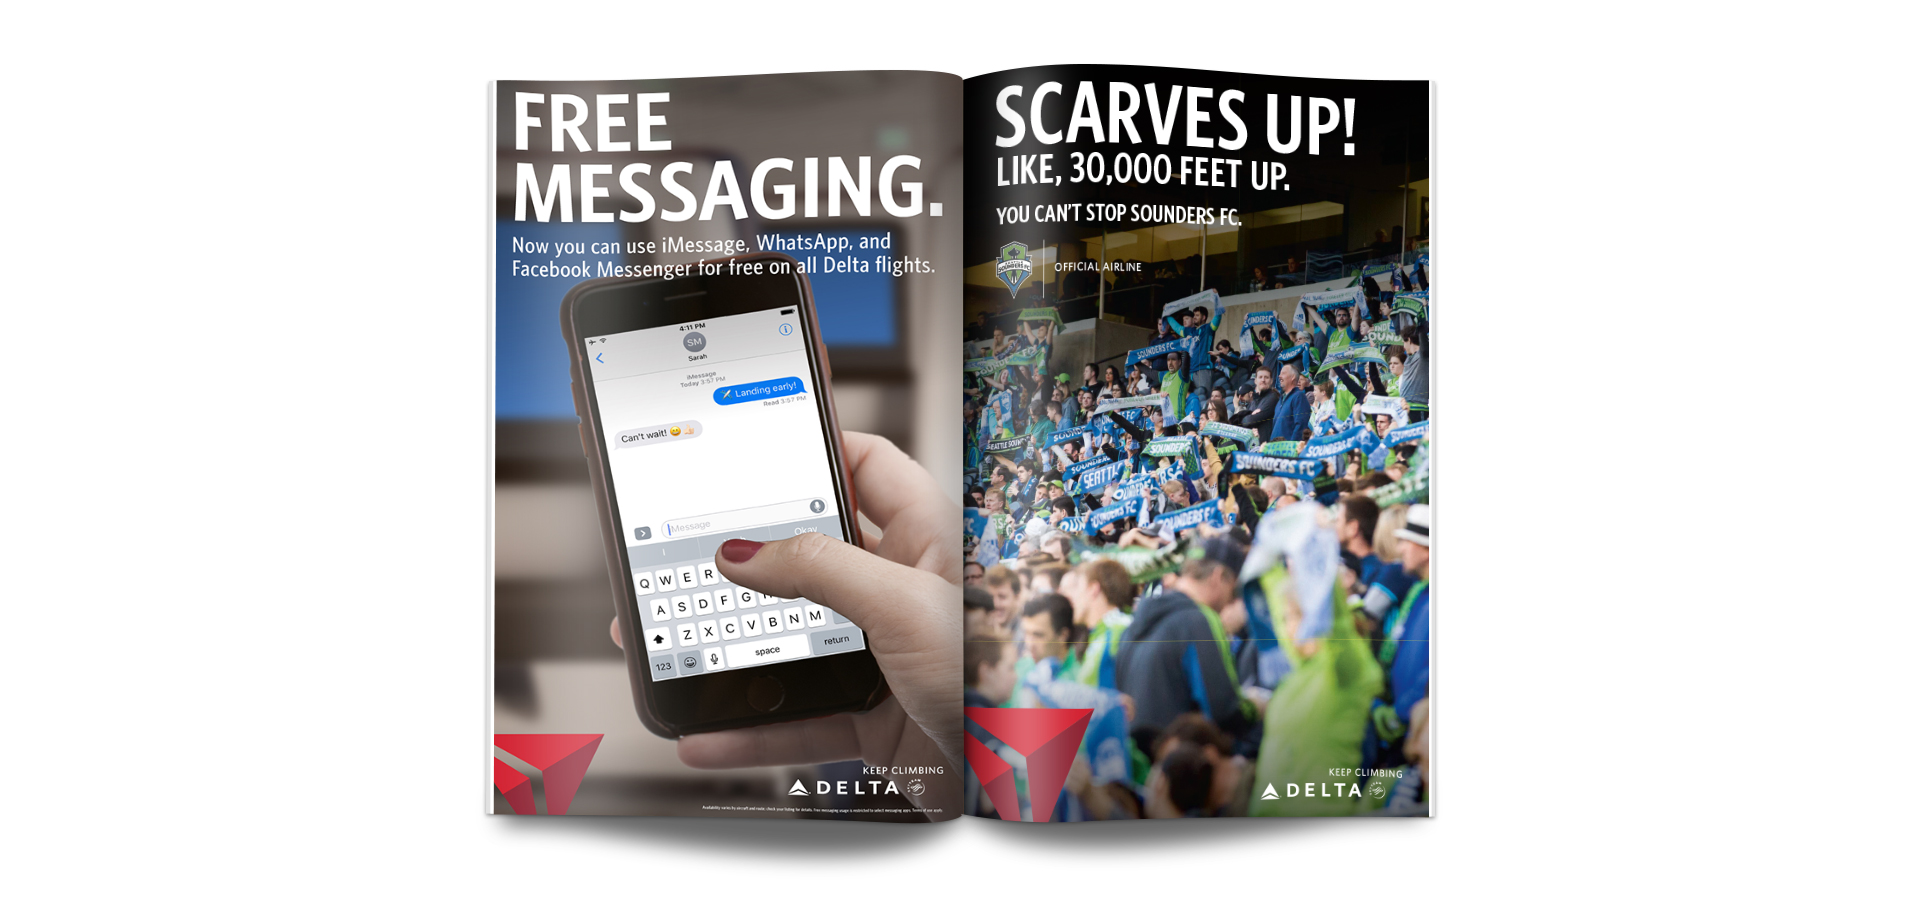 Print-Mockup_FreeMessaging_Sounders.jpg